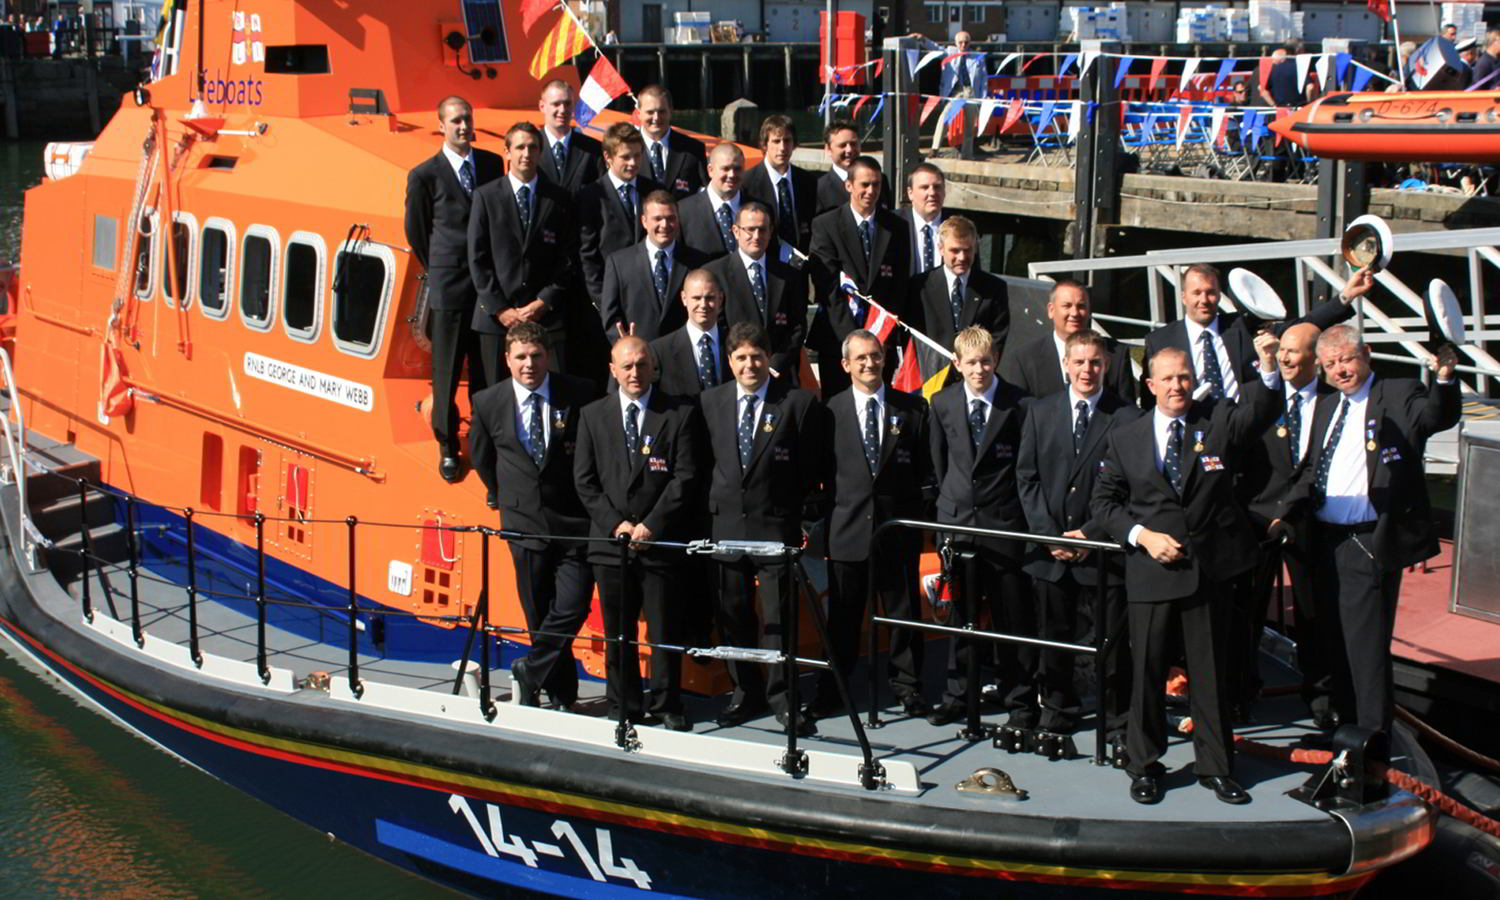 The Very Proud Lifeboat Crewmen